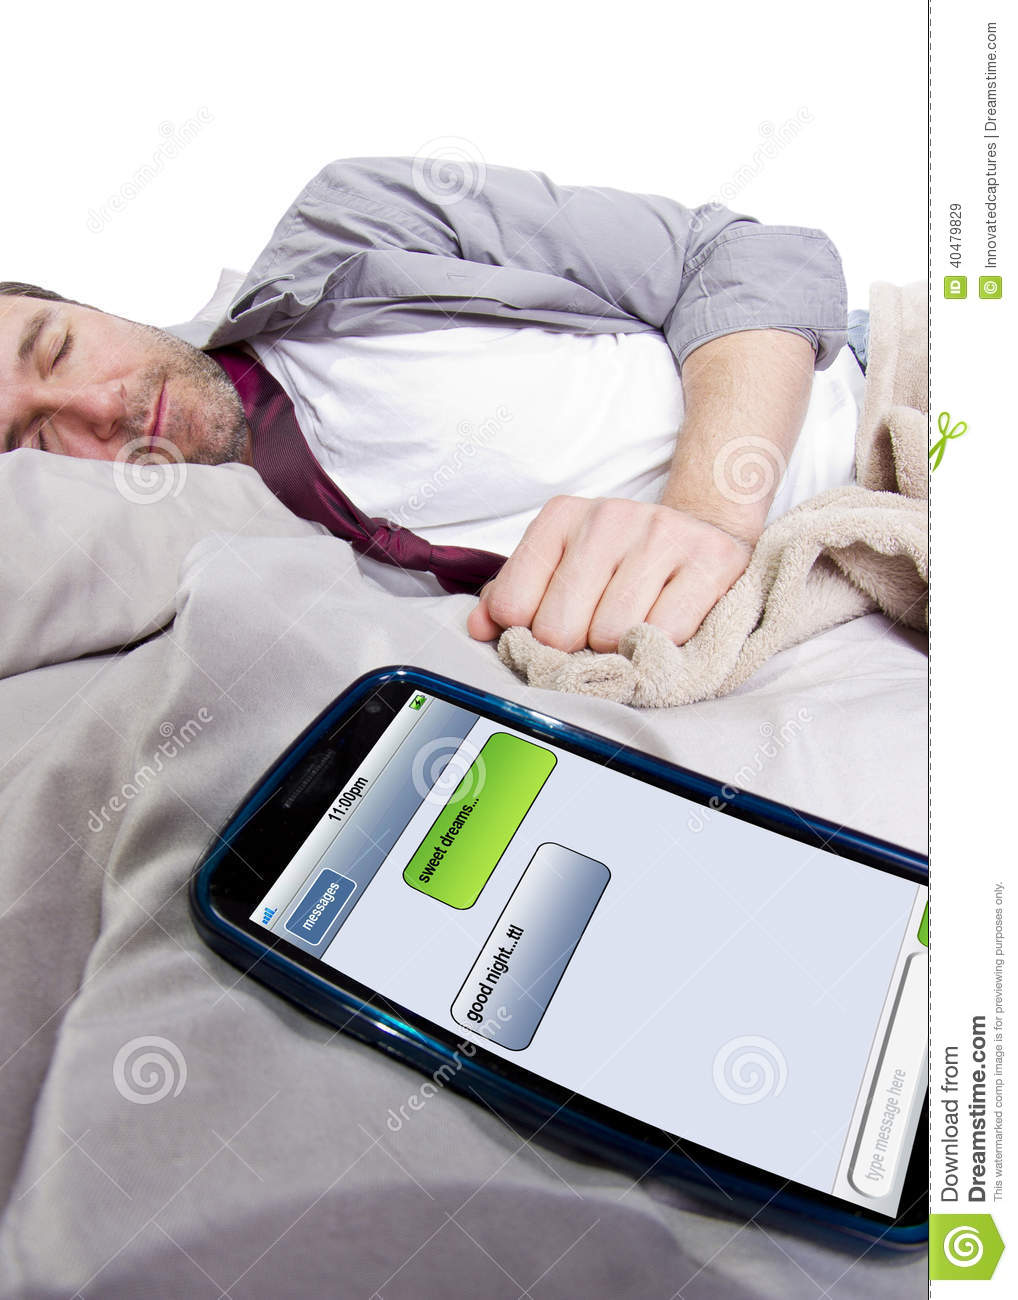 Good Night Text Messages Stock Photo - Image: 40479829